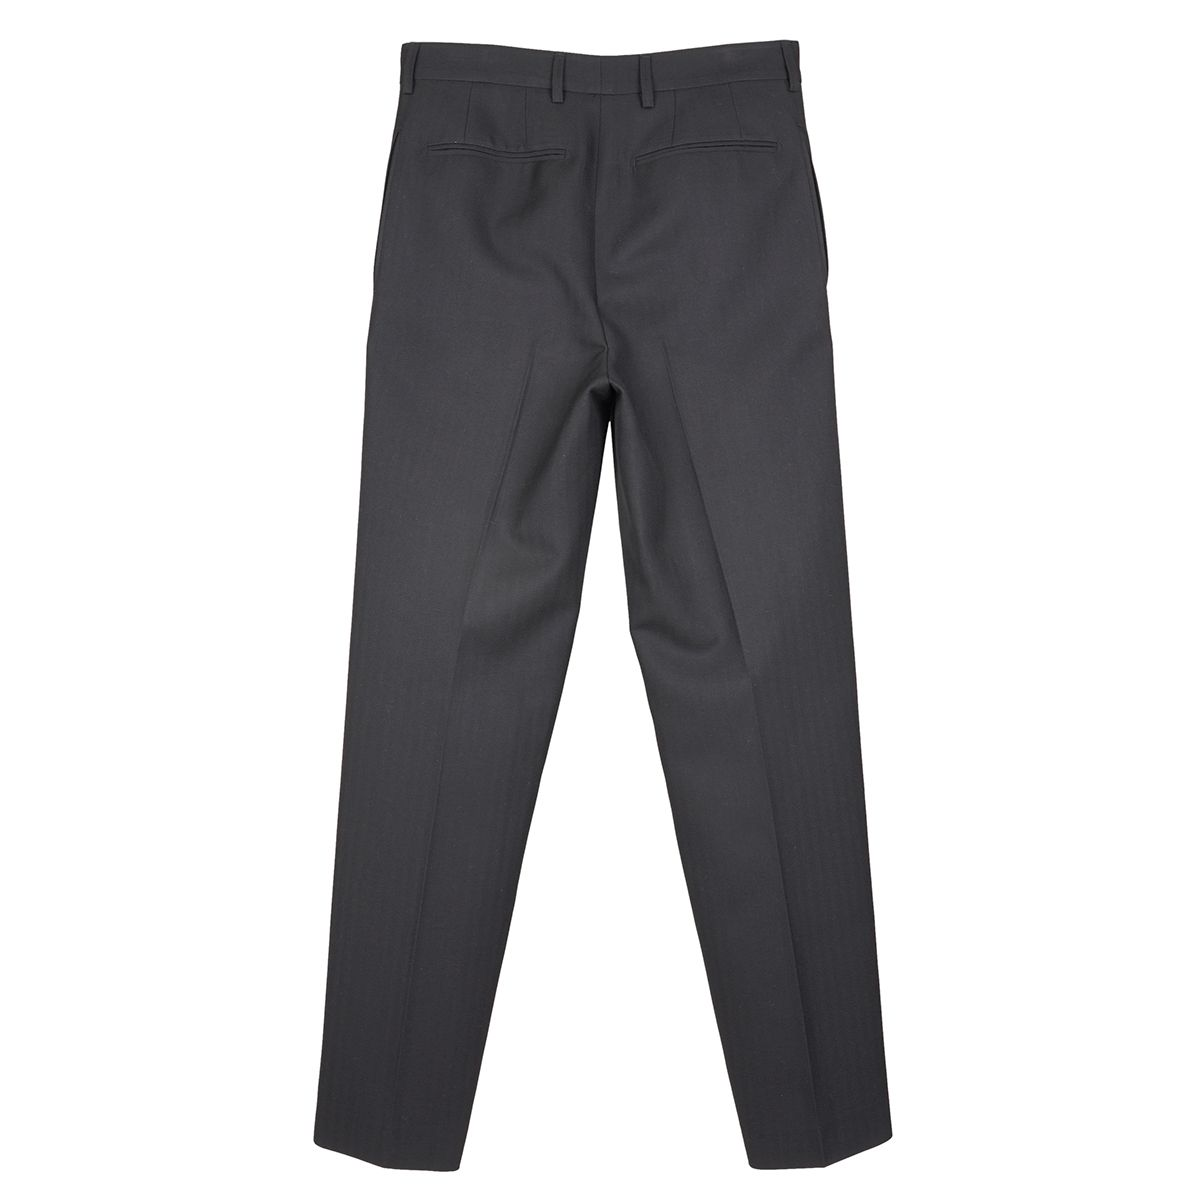 WE11DONE PEARL CHAIN BAGGY TROUSER / BLACK